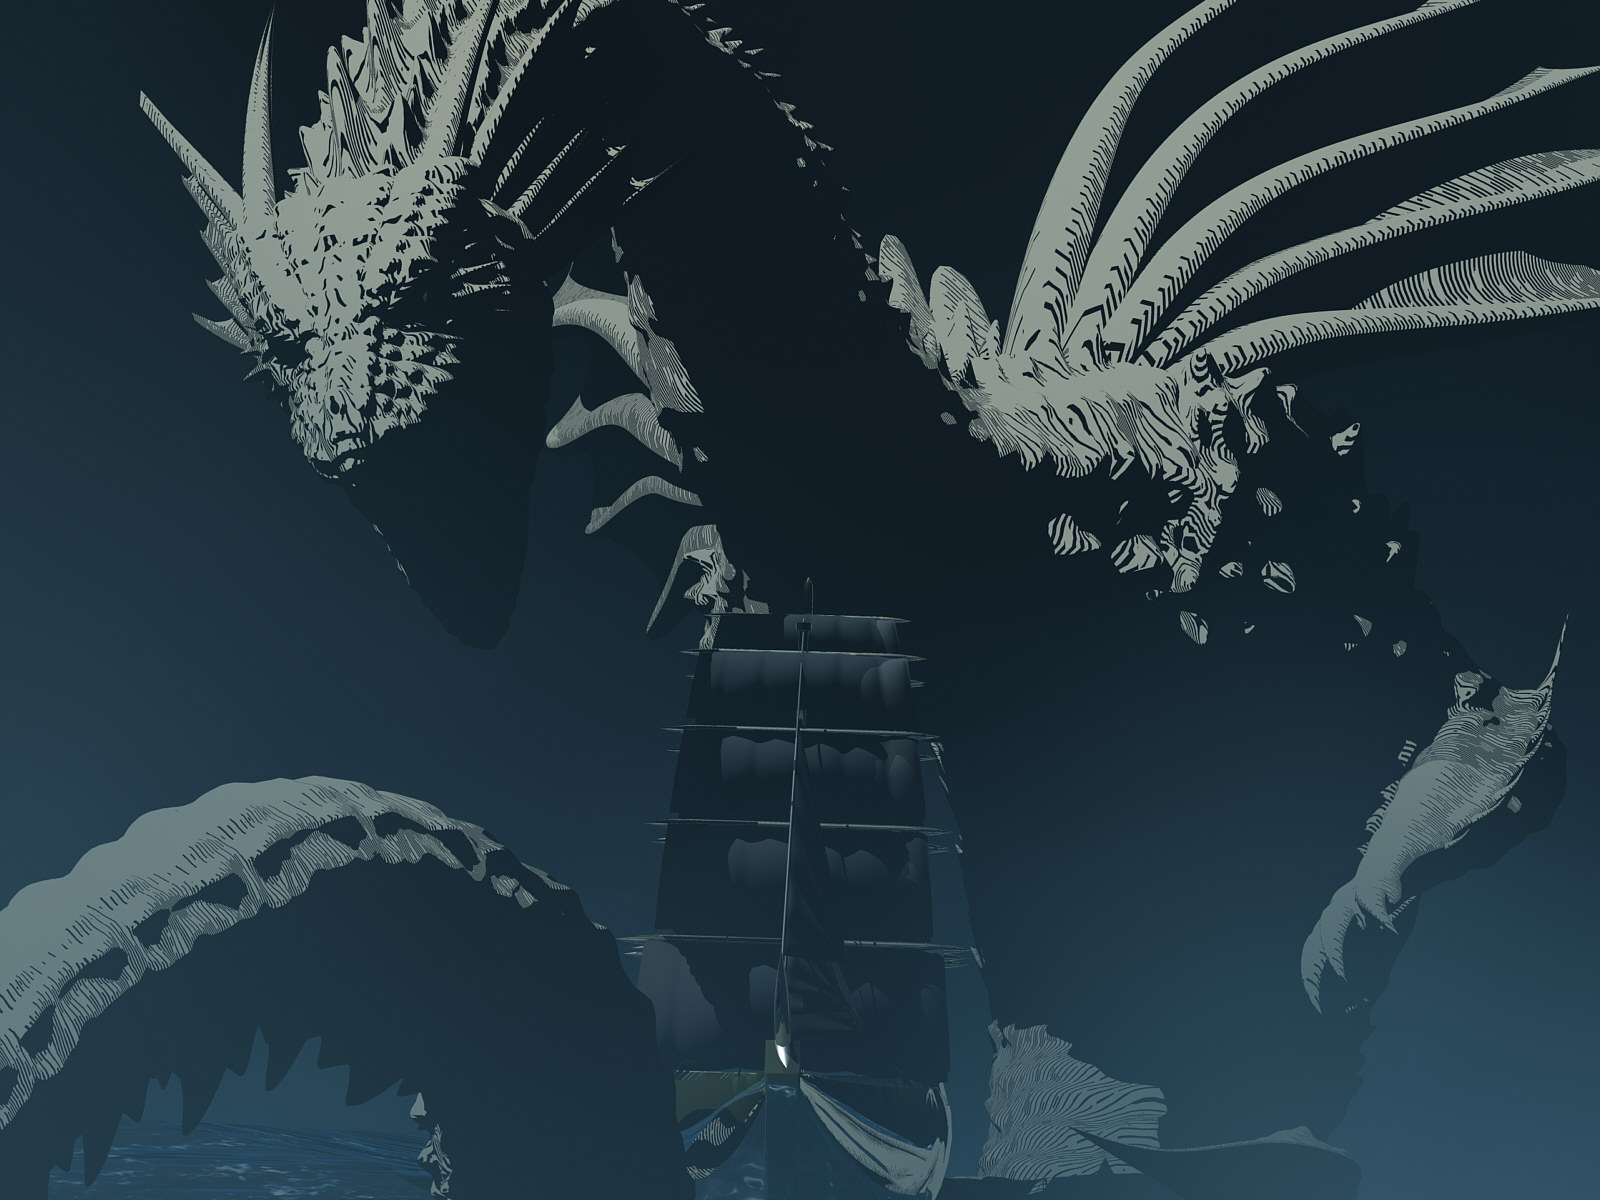 DeepSea Dragon vs. Galleon